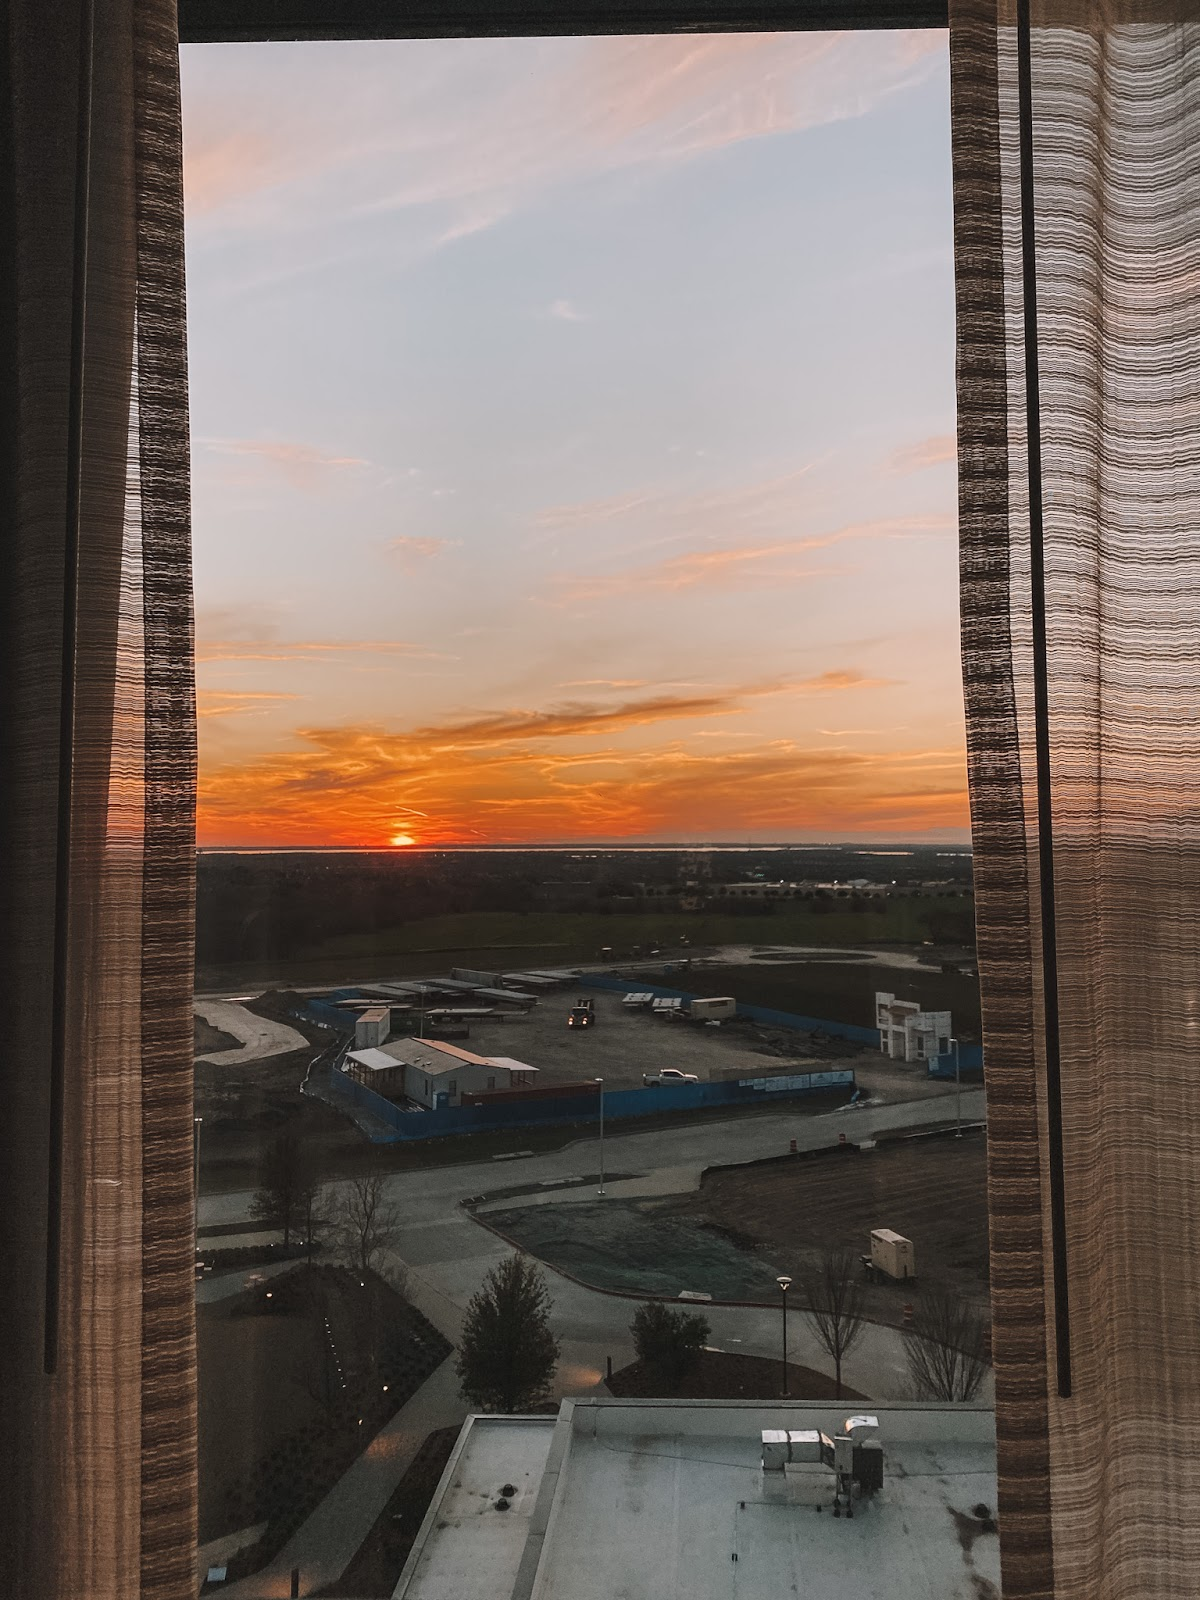 sunset over Frisco, Texas from the AC Hotel by Marriott